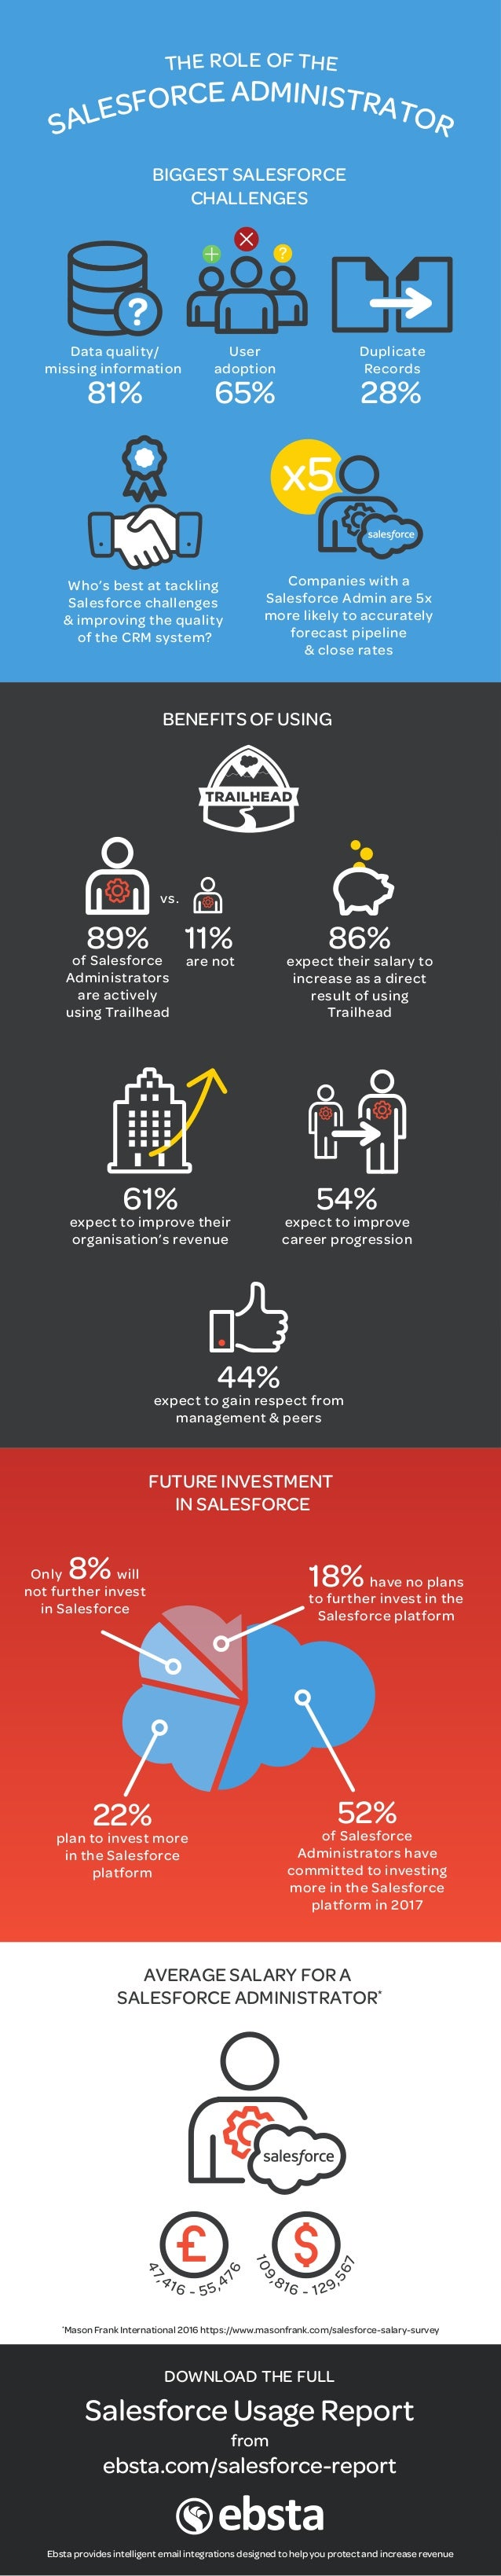 FUTURE INVESTMENT IN SALESFORCE 52% of Salesforce Administrators have committed to investing more in the Salesforce platfo...